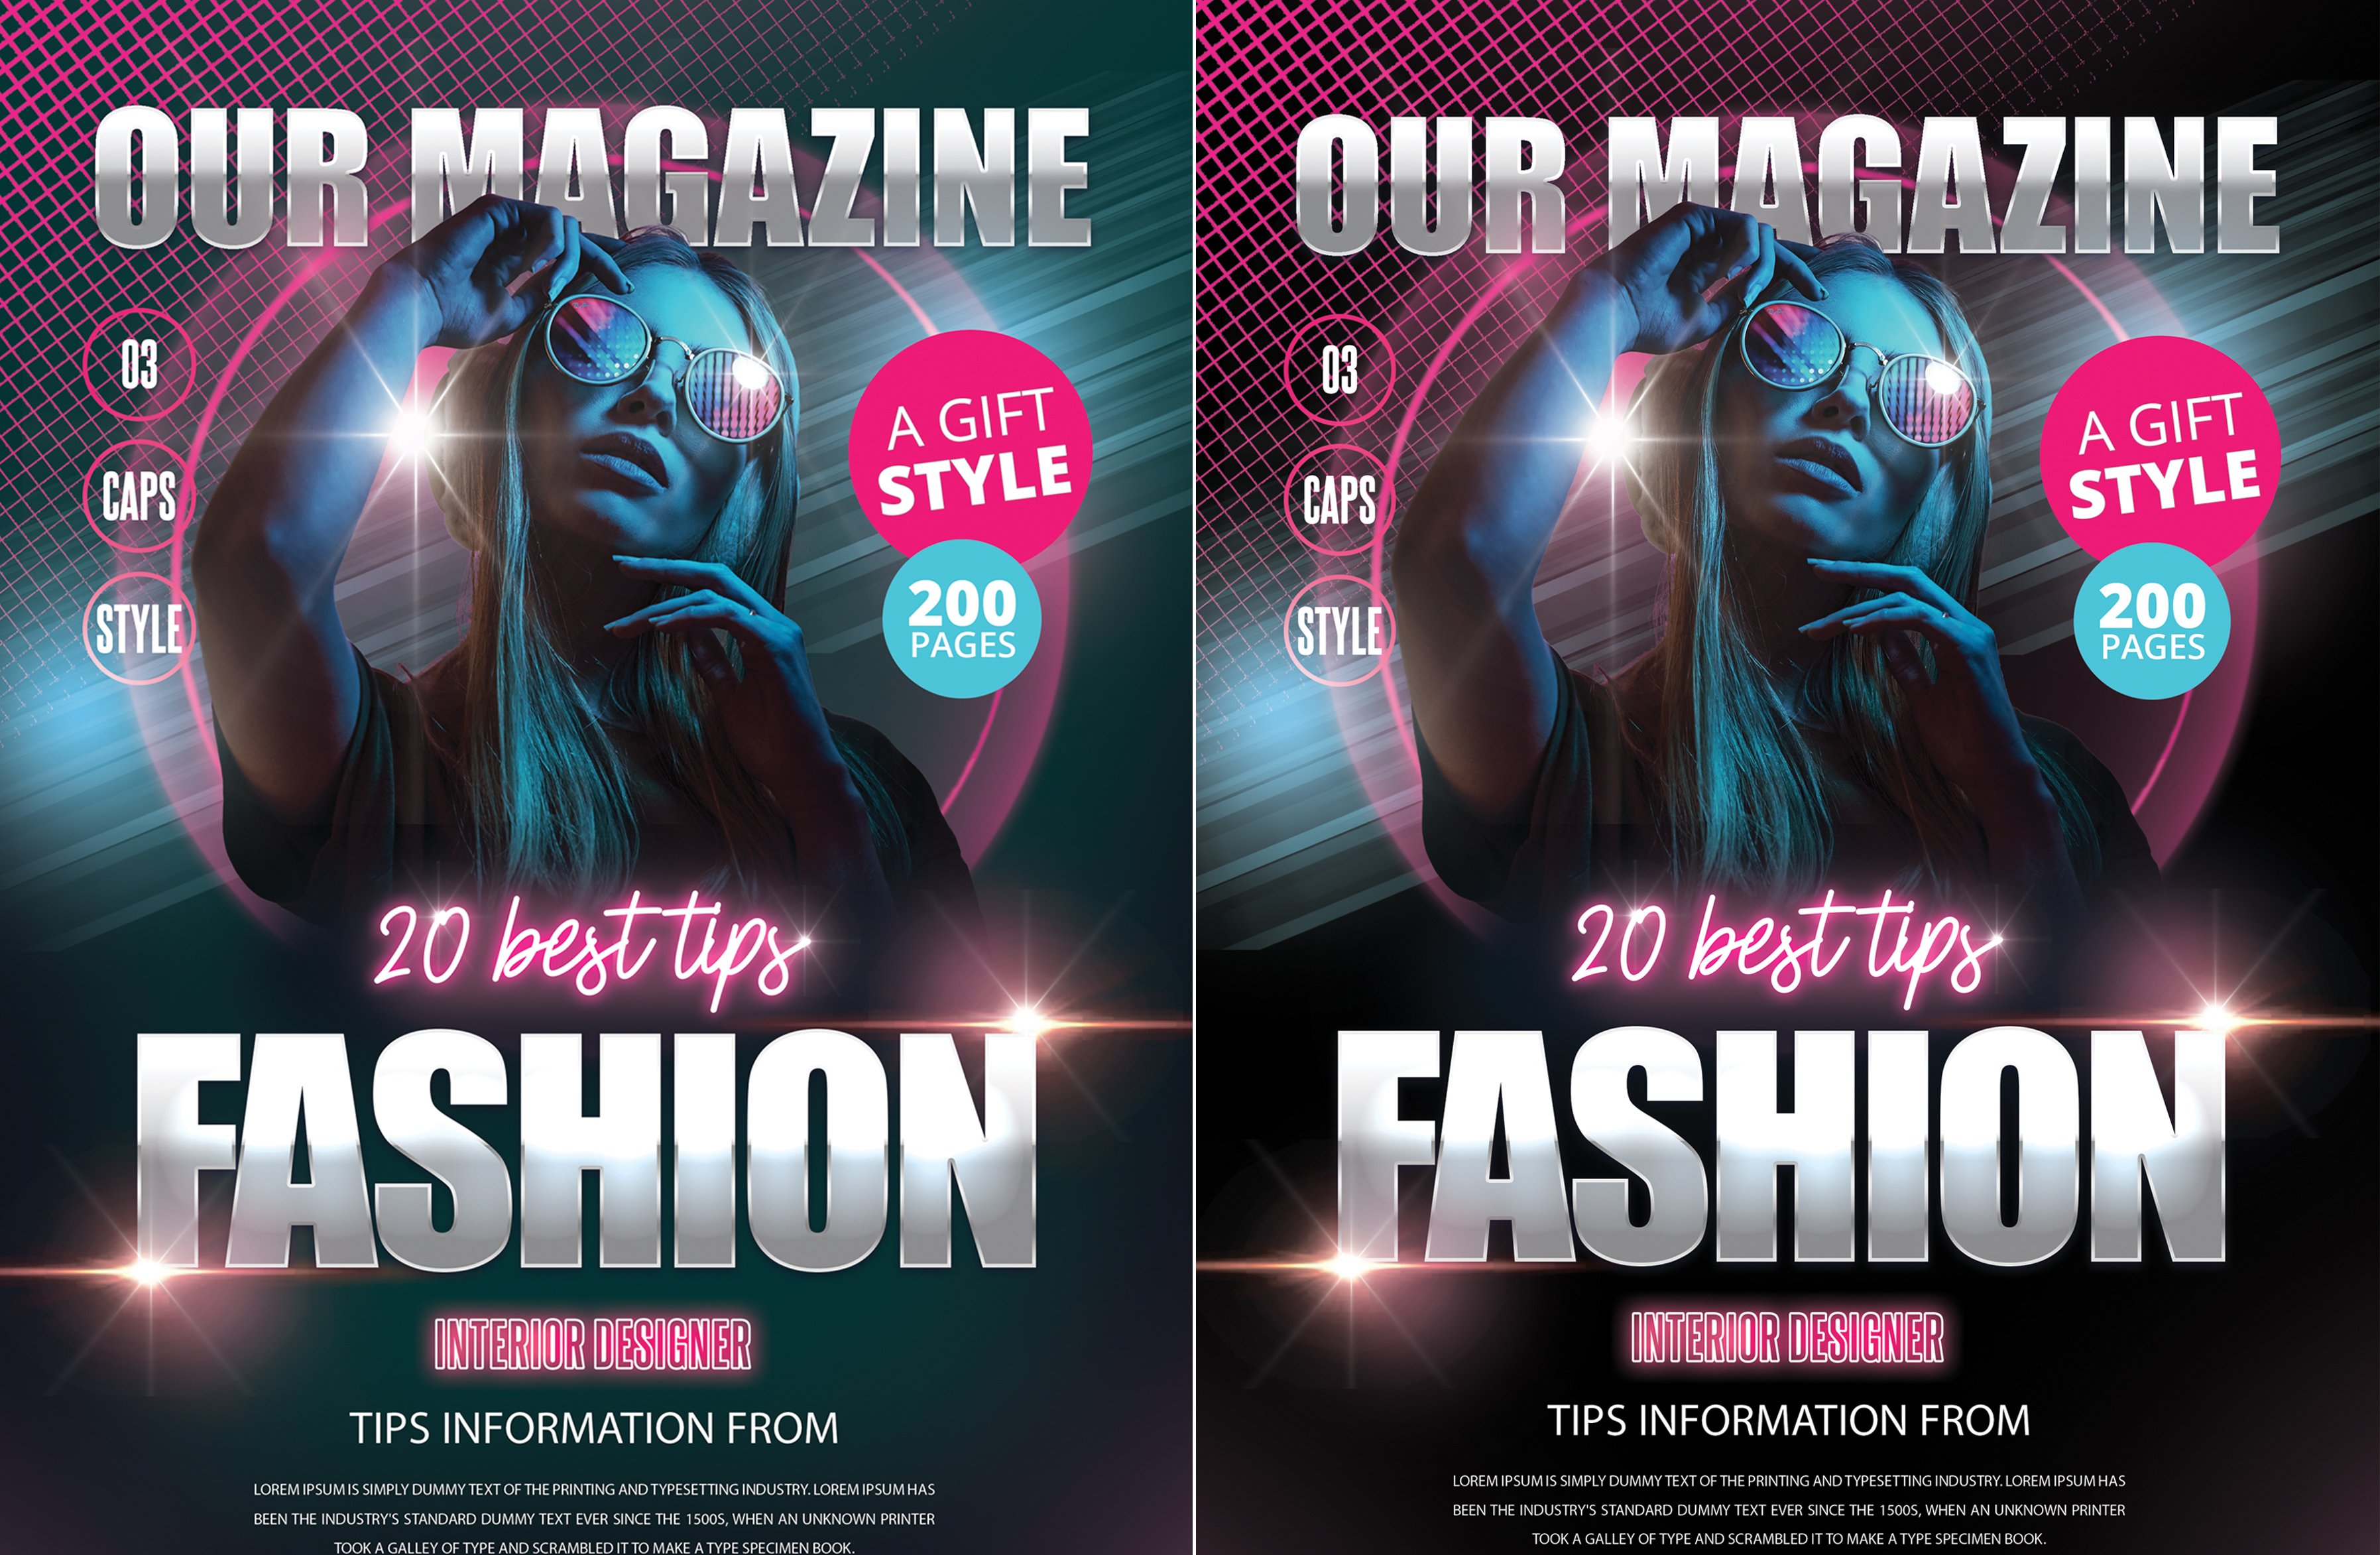 I will design eye Cathy magazine cover,  layout exclusively on seoclerks